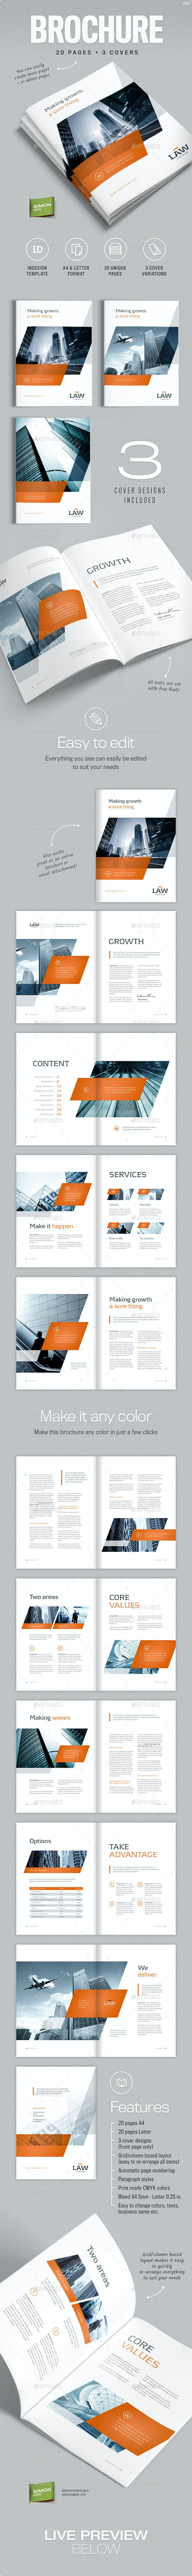 Brochure template for Indesign - A4 and Letter - Corporate Brochures